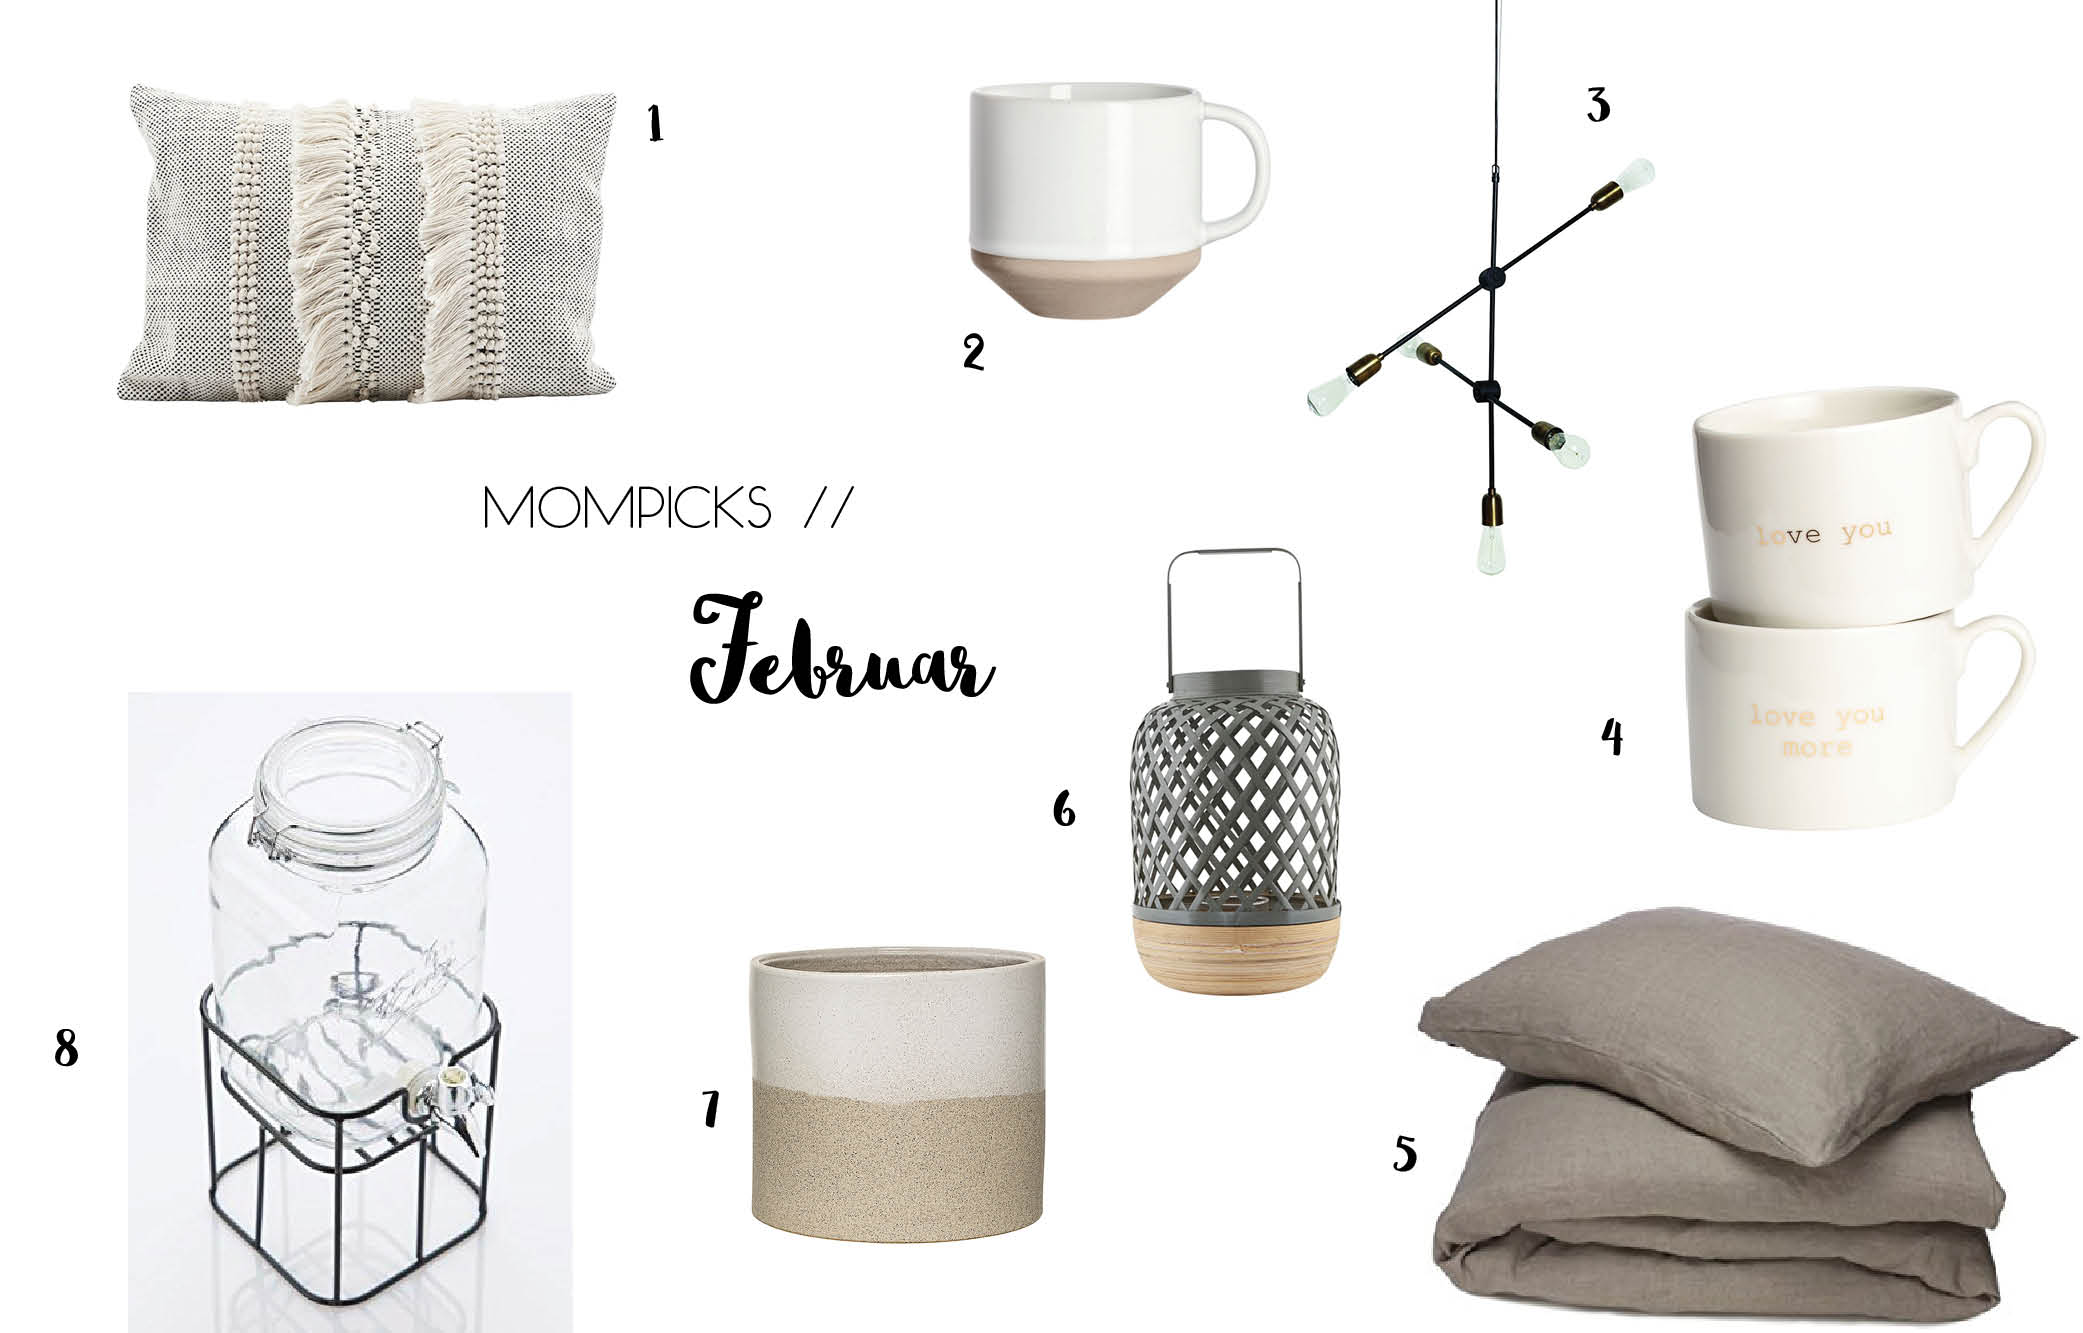 Mompicks Februar, Shoppingtipps, Wishlist, Interior Decor